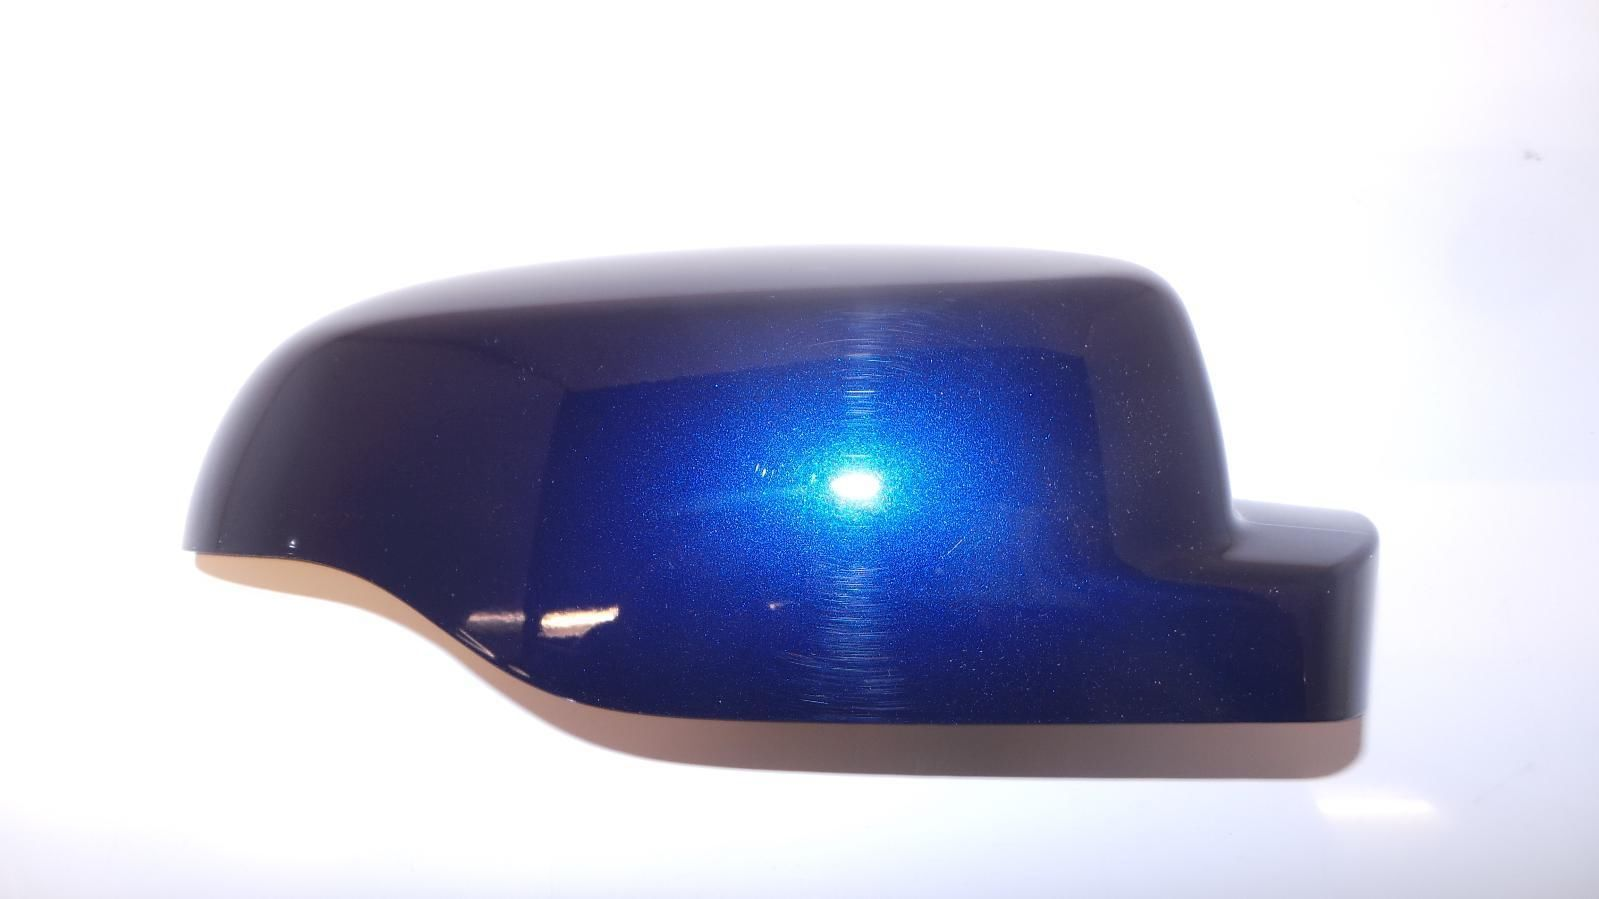 BMW Part Numbers >> NEW RENAULT CLIO III RIGHT DOOR MIRROR COVER IN BLUE 1255 3050